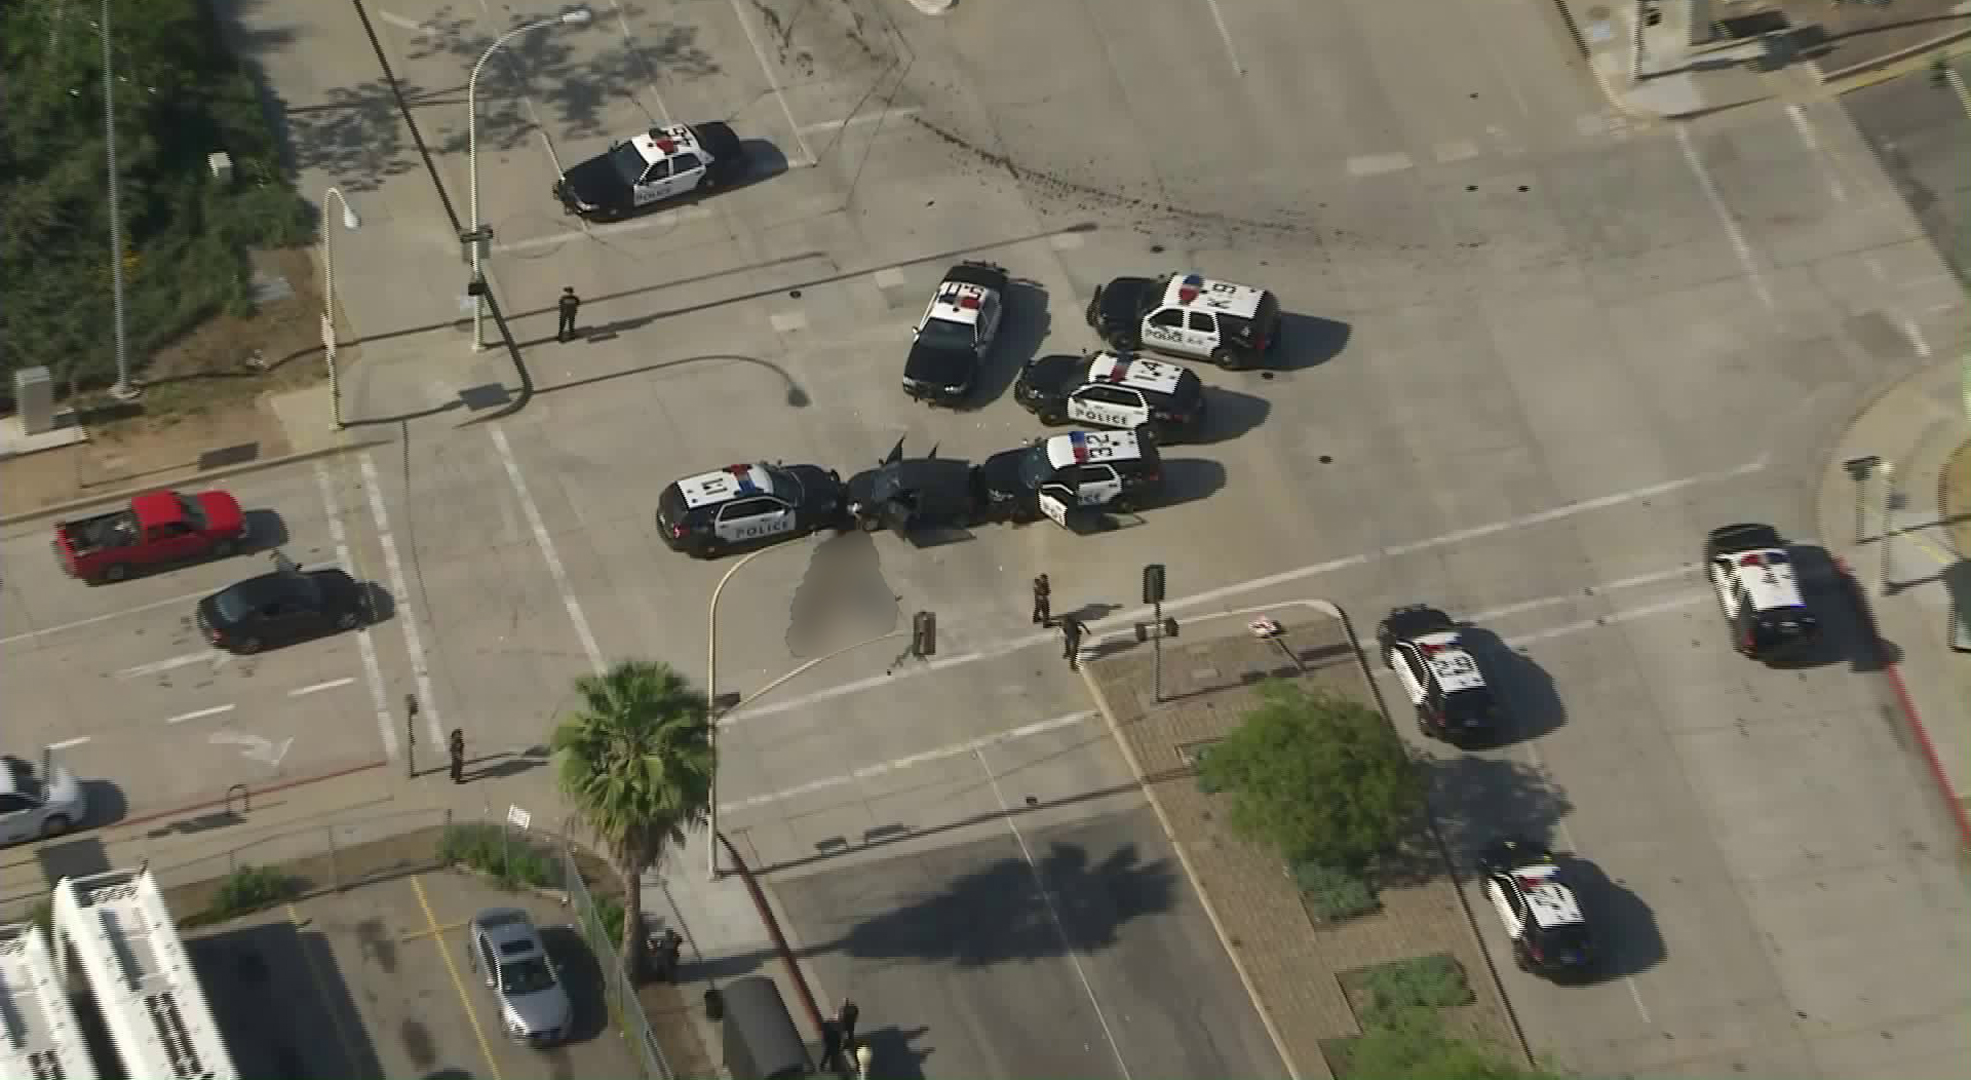 Authorities respond to a police shooting in Pasadena on May 8, 2020. (KTLA)